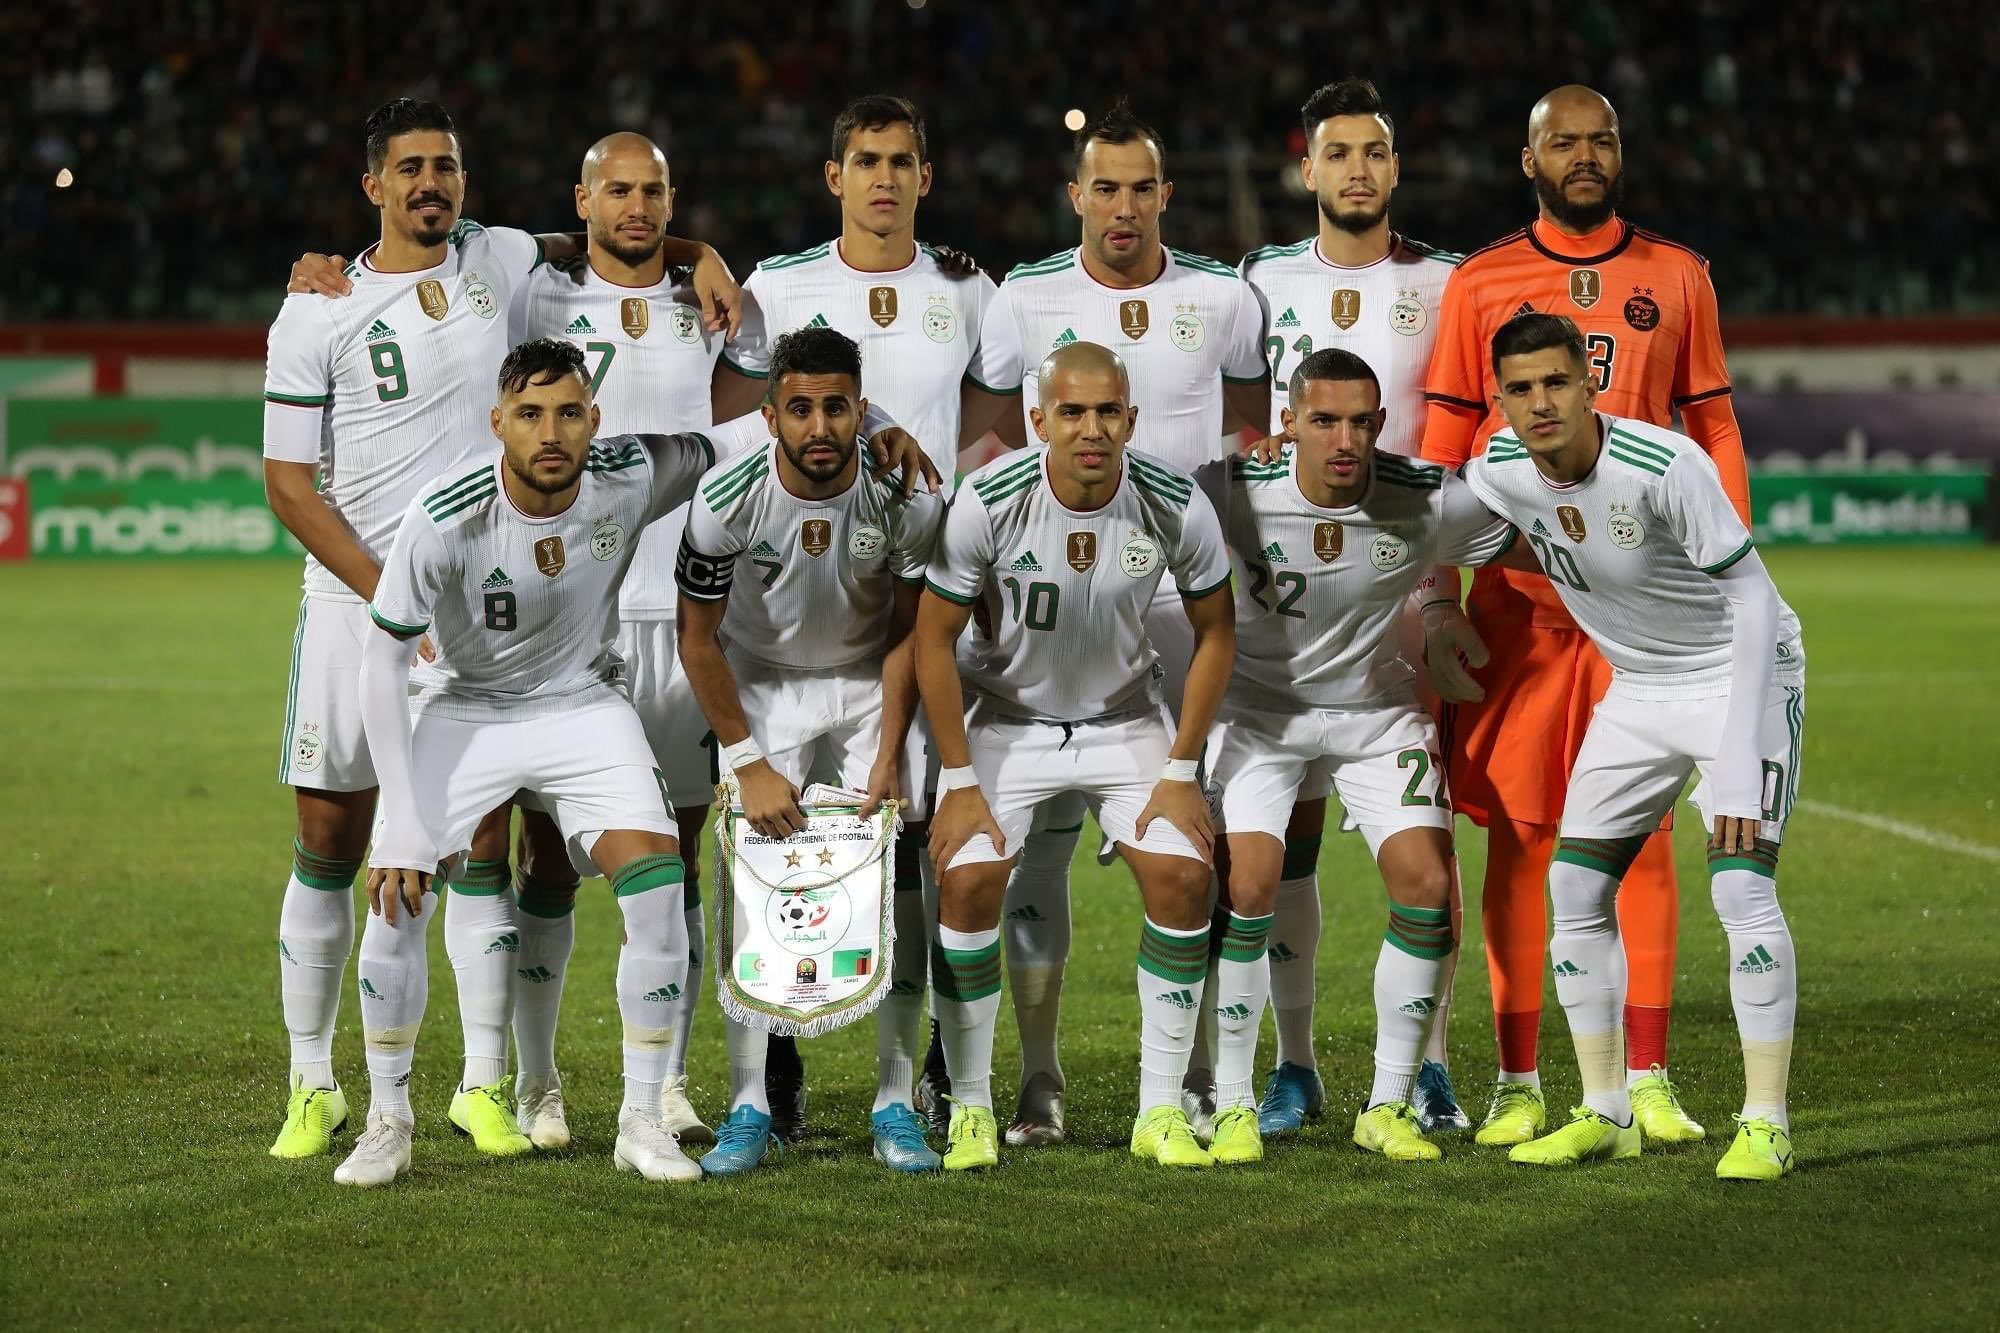 Friendly: Algeria Unleash Mahrez, Benrahma, Feghouli On Super Eagles